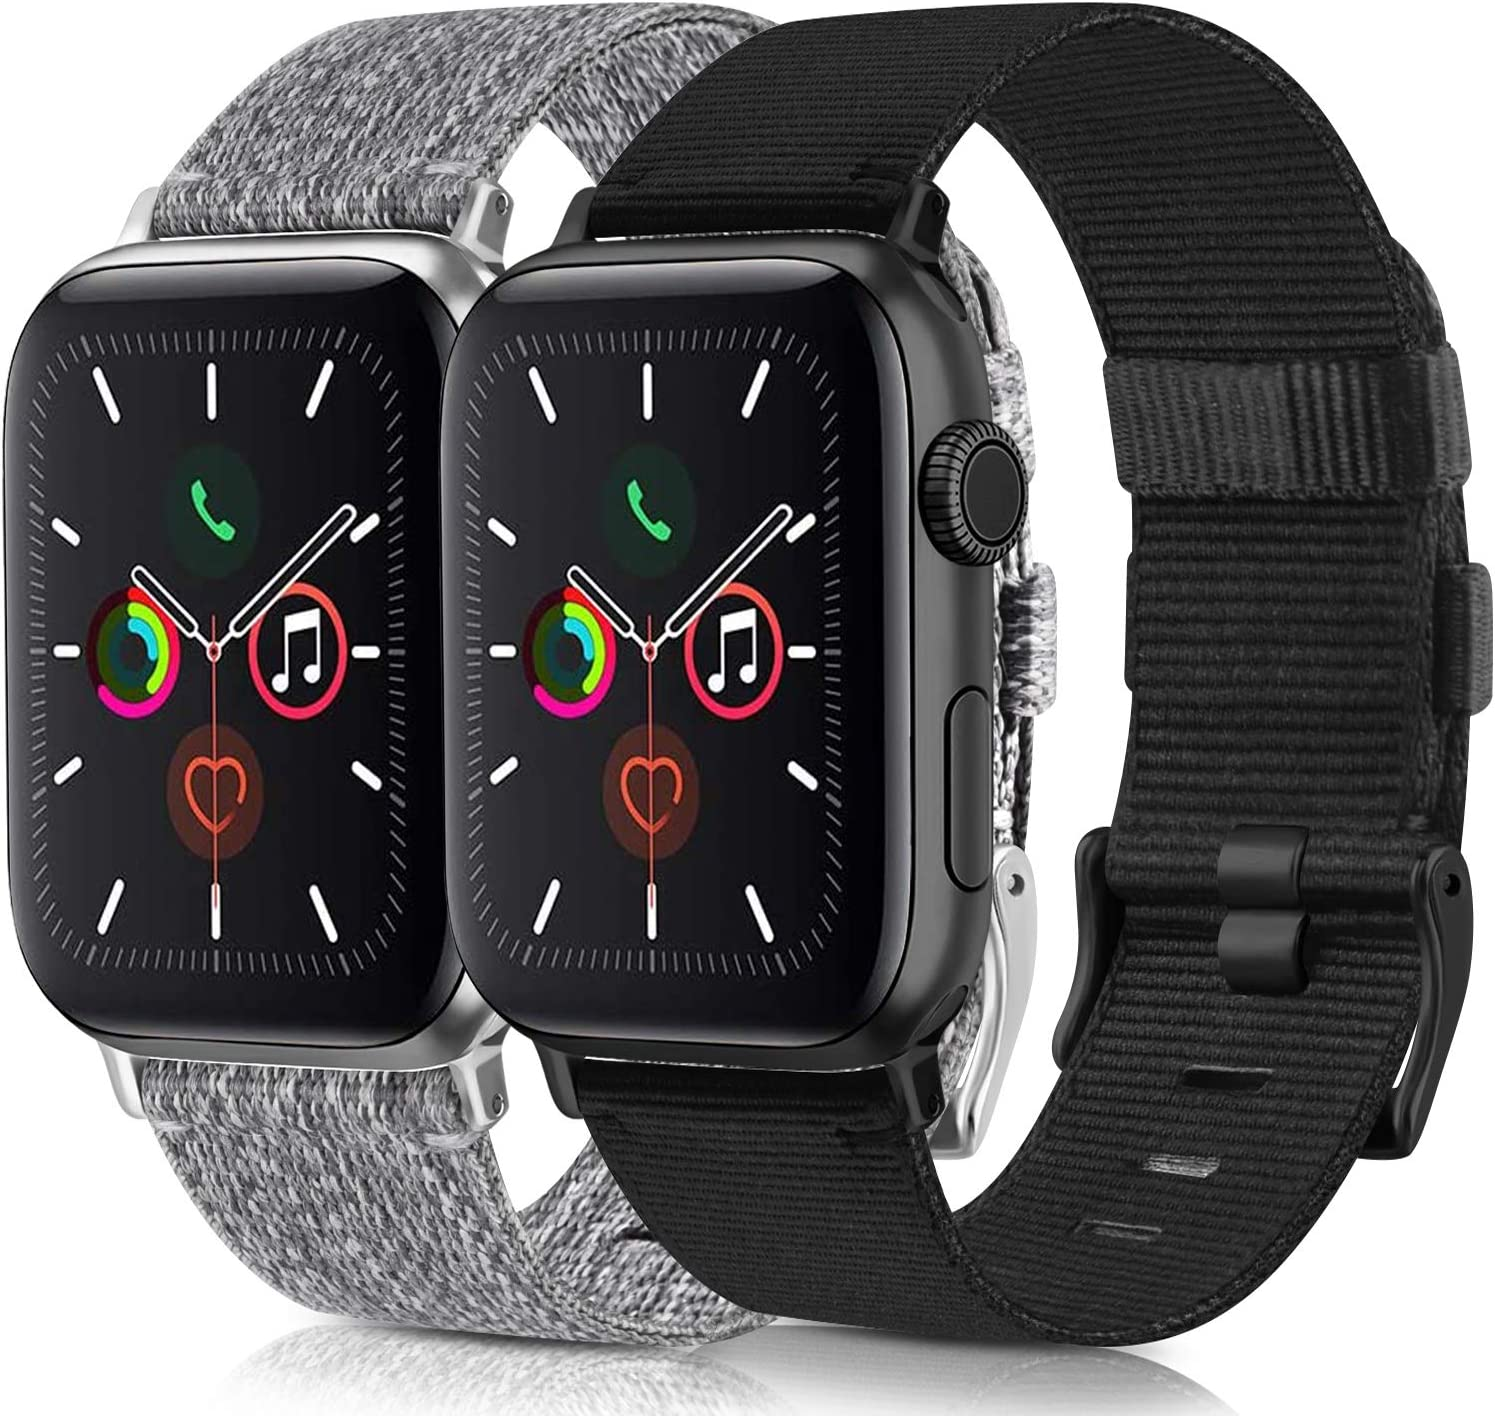 [2 Pack] Woven Bands Compatible for Apple Watch Band 38mm 40mm 42mm 44mm, Soft Woven Fabric Replacement Band Compatible for iWatch Series 6 5 4 3 2 1 (Black,Gray, 42mm/44mm)